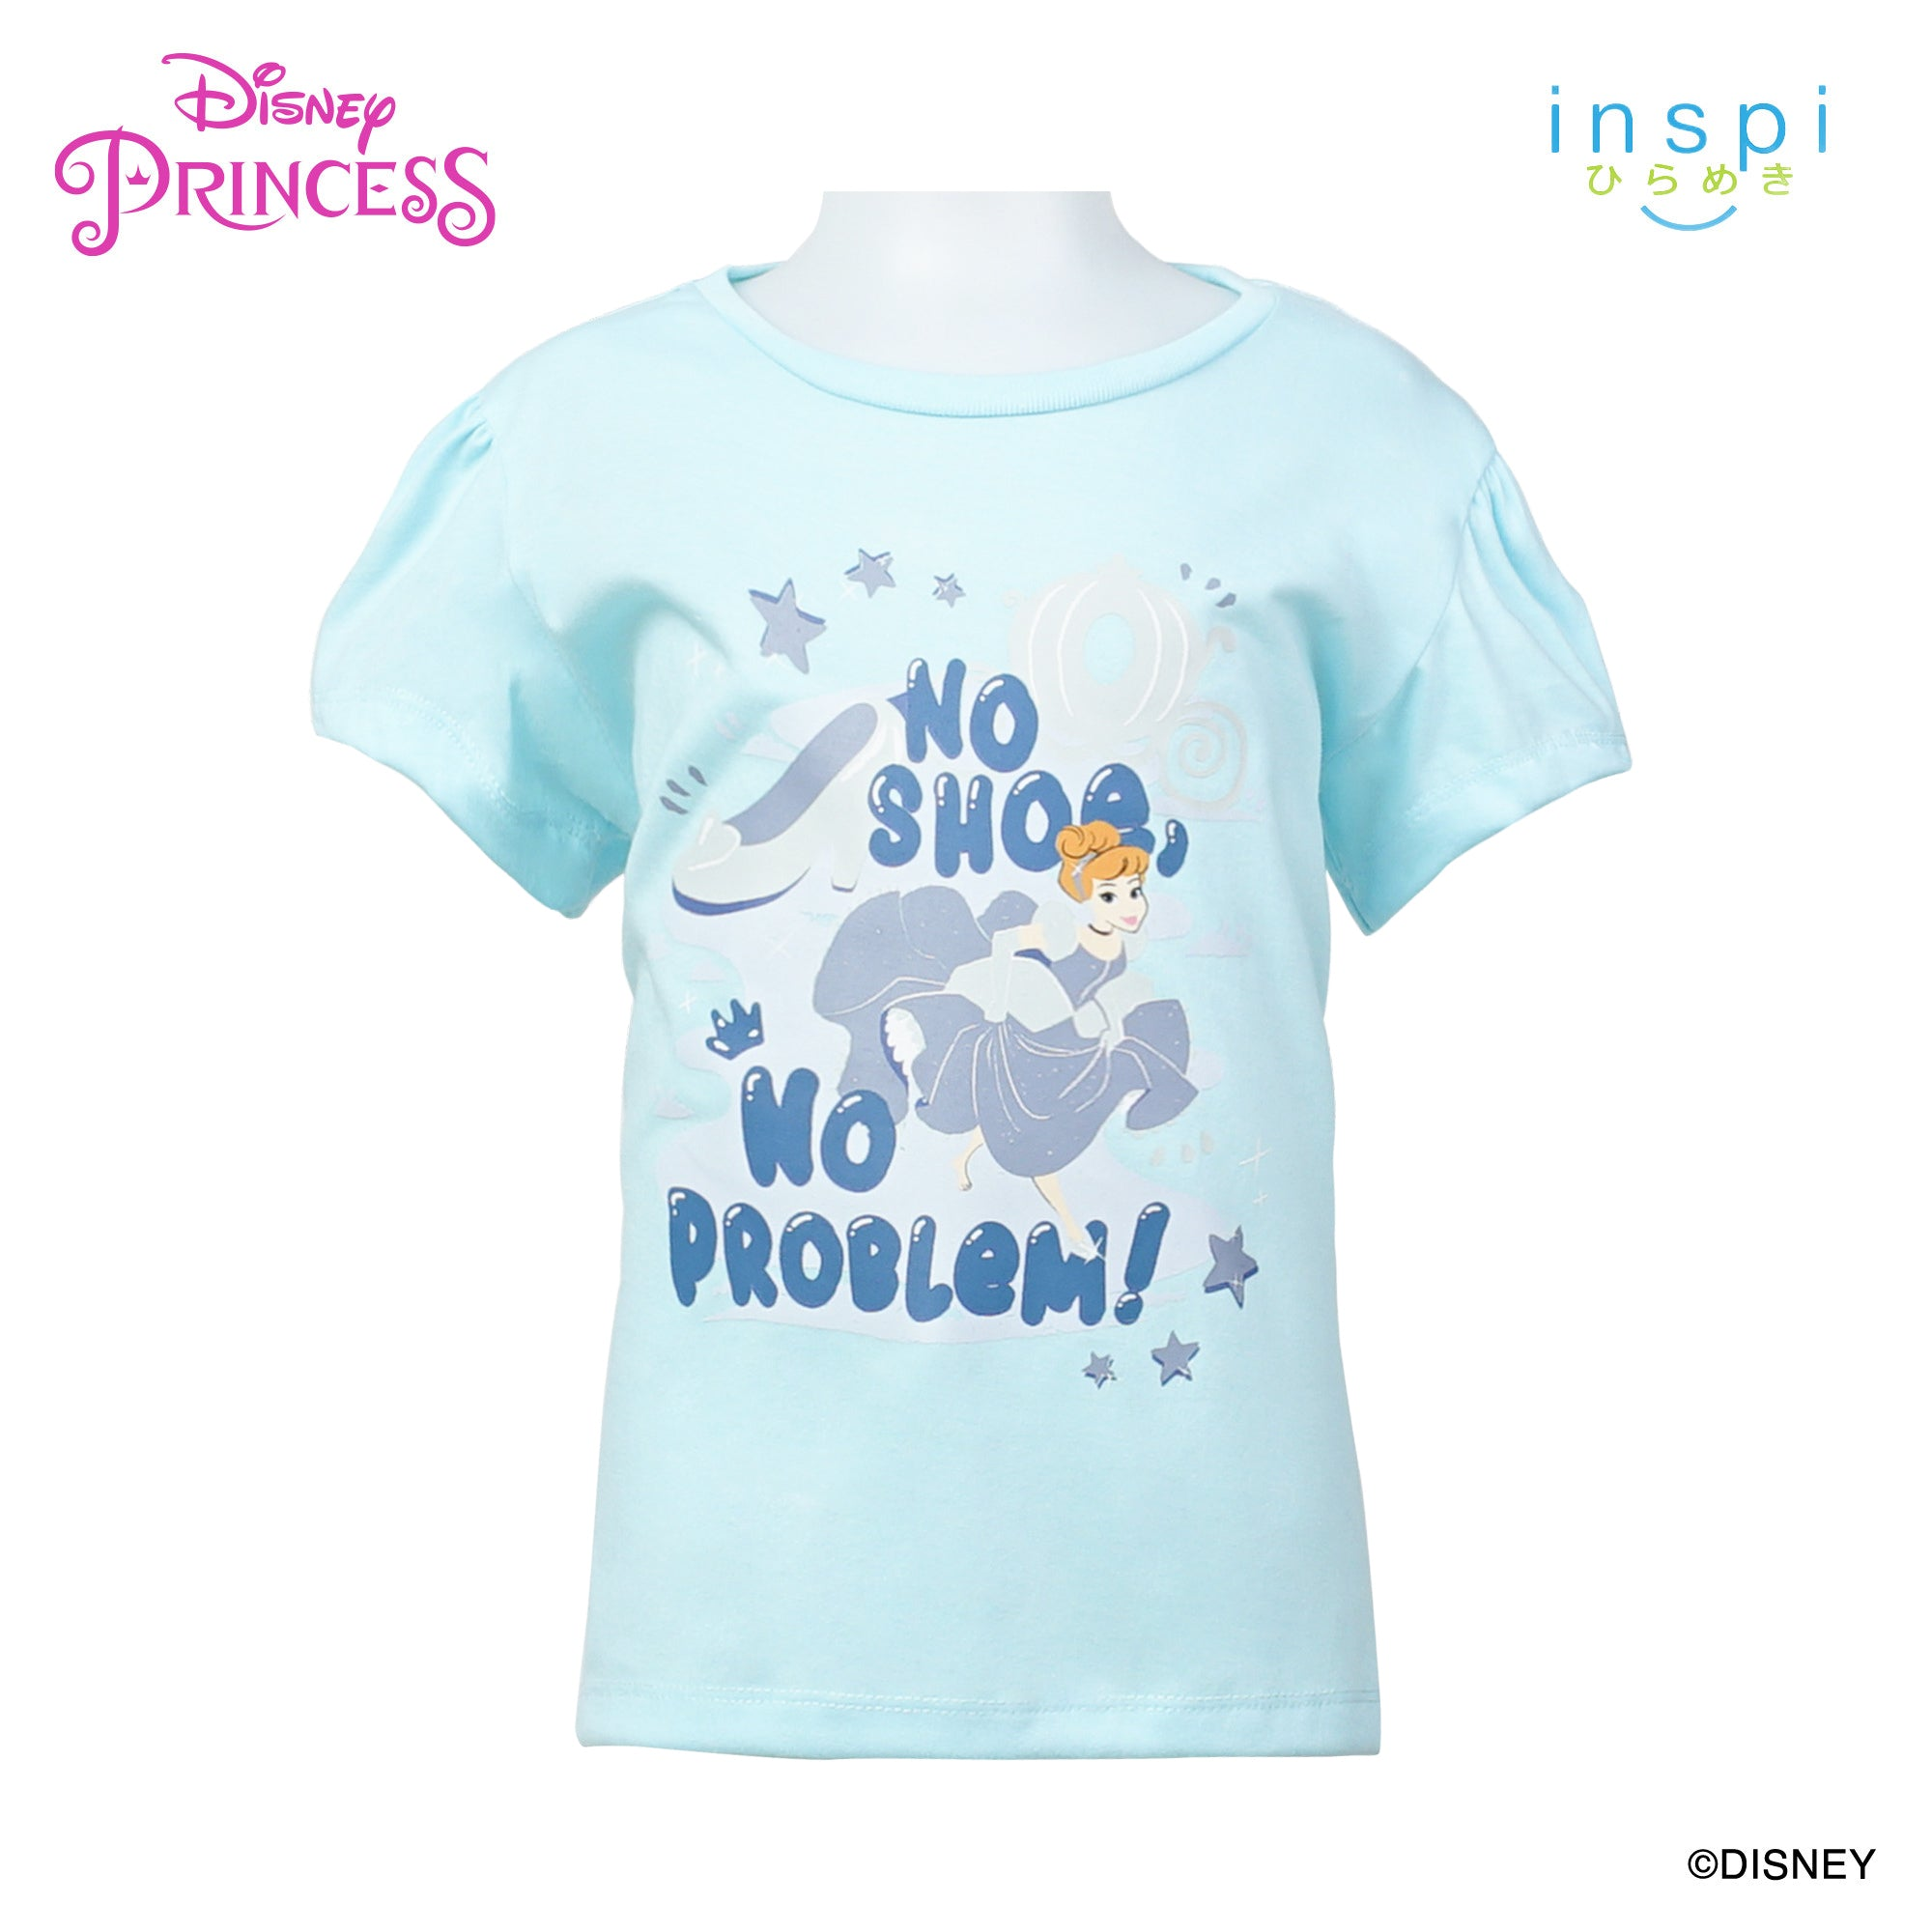 Disney Princess Cinderella No Shoe No Problem Tshirt in Powder Blue for Girls Inspi Shirt